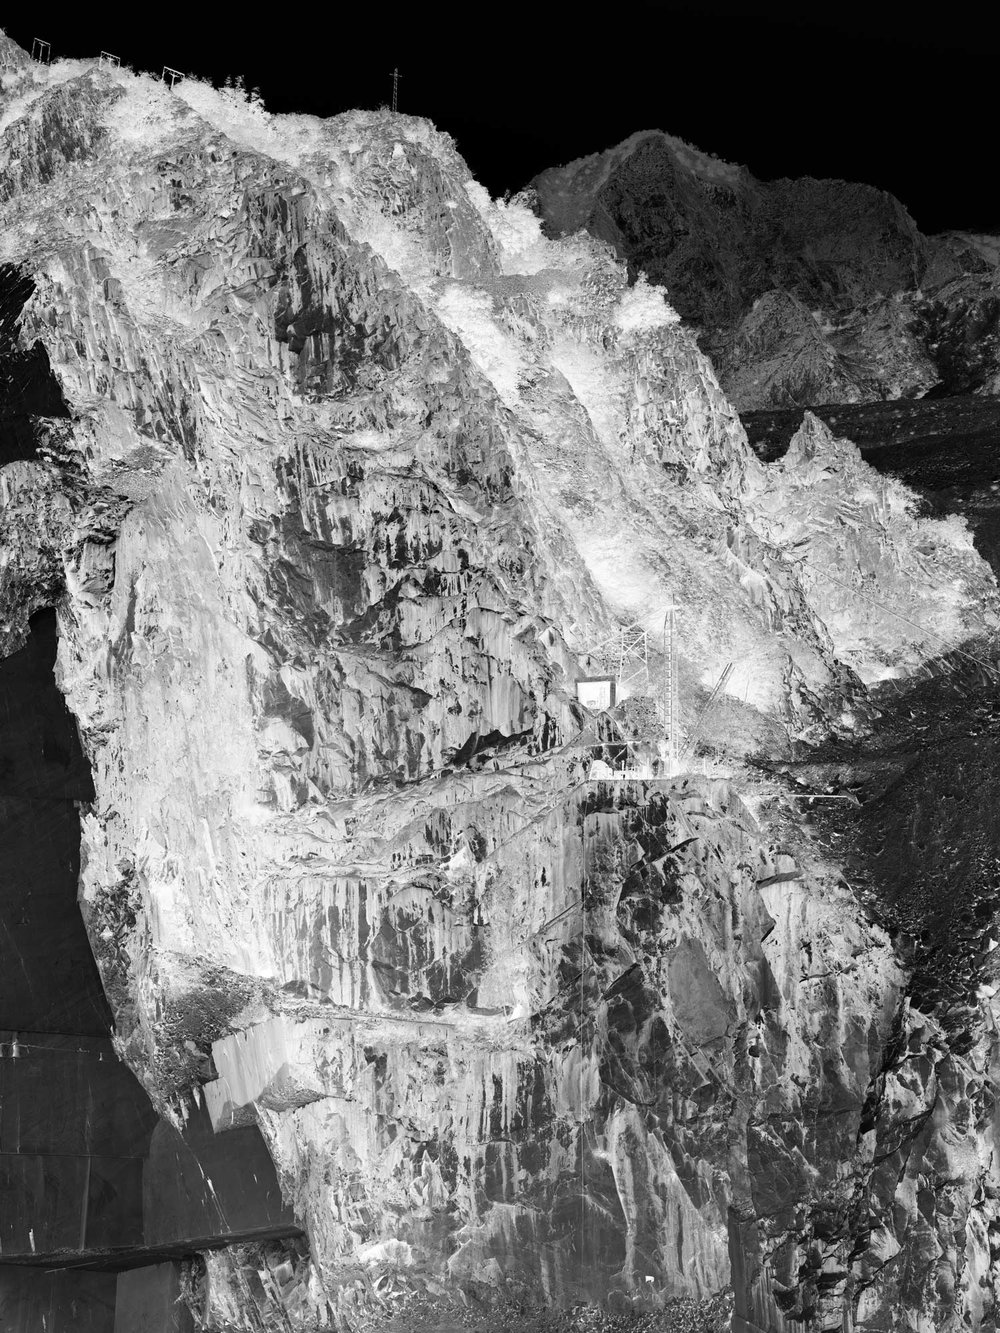 a negative photo of one of the giant walls of marble in the Torano basin, few kilometers North-West of Carrara, with more than 30 active quarries, worlwide famous for statuary white marble.